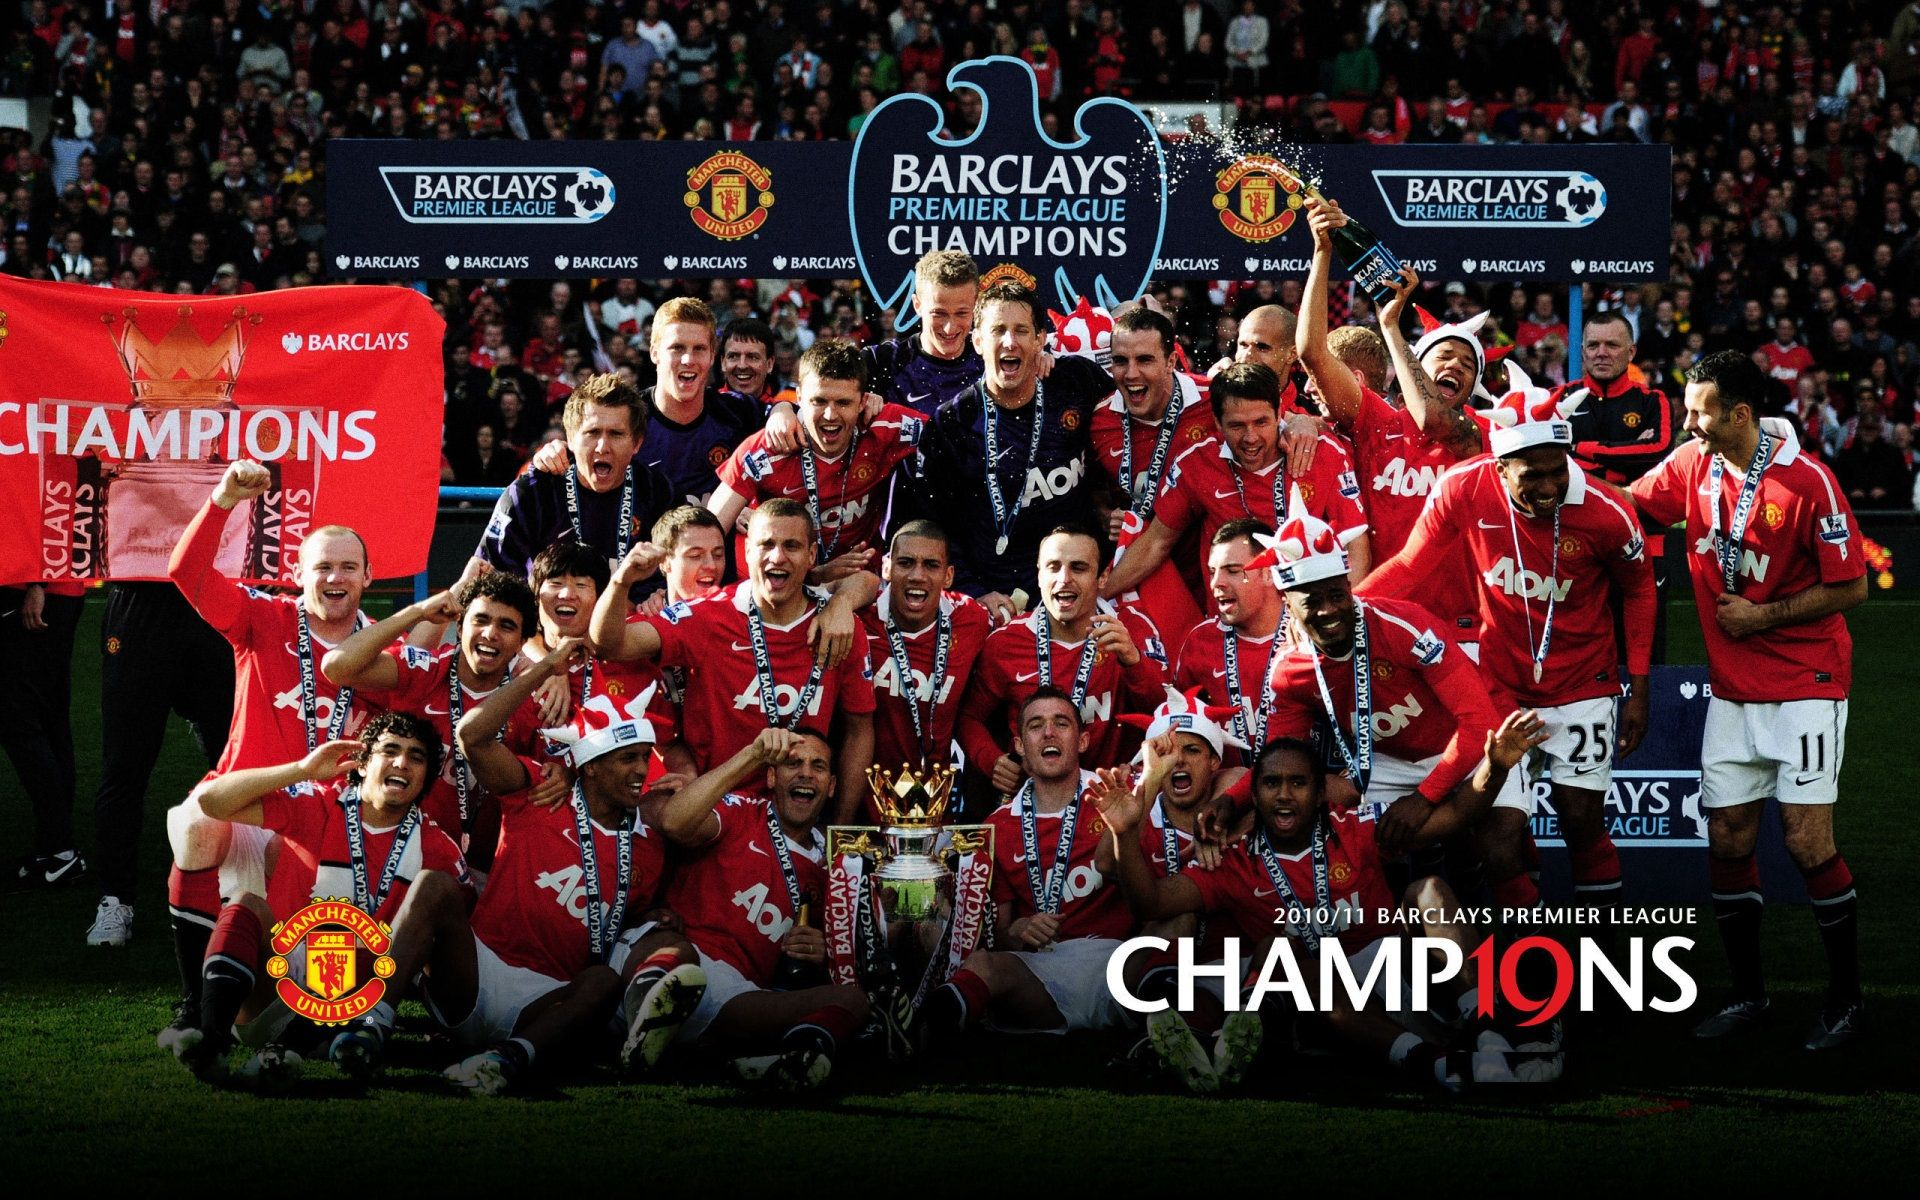 Manchester United Soccer Wallpapers Football Wallpaper Manchester United Cool Wallpapers Khởi Nghiệp